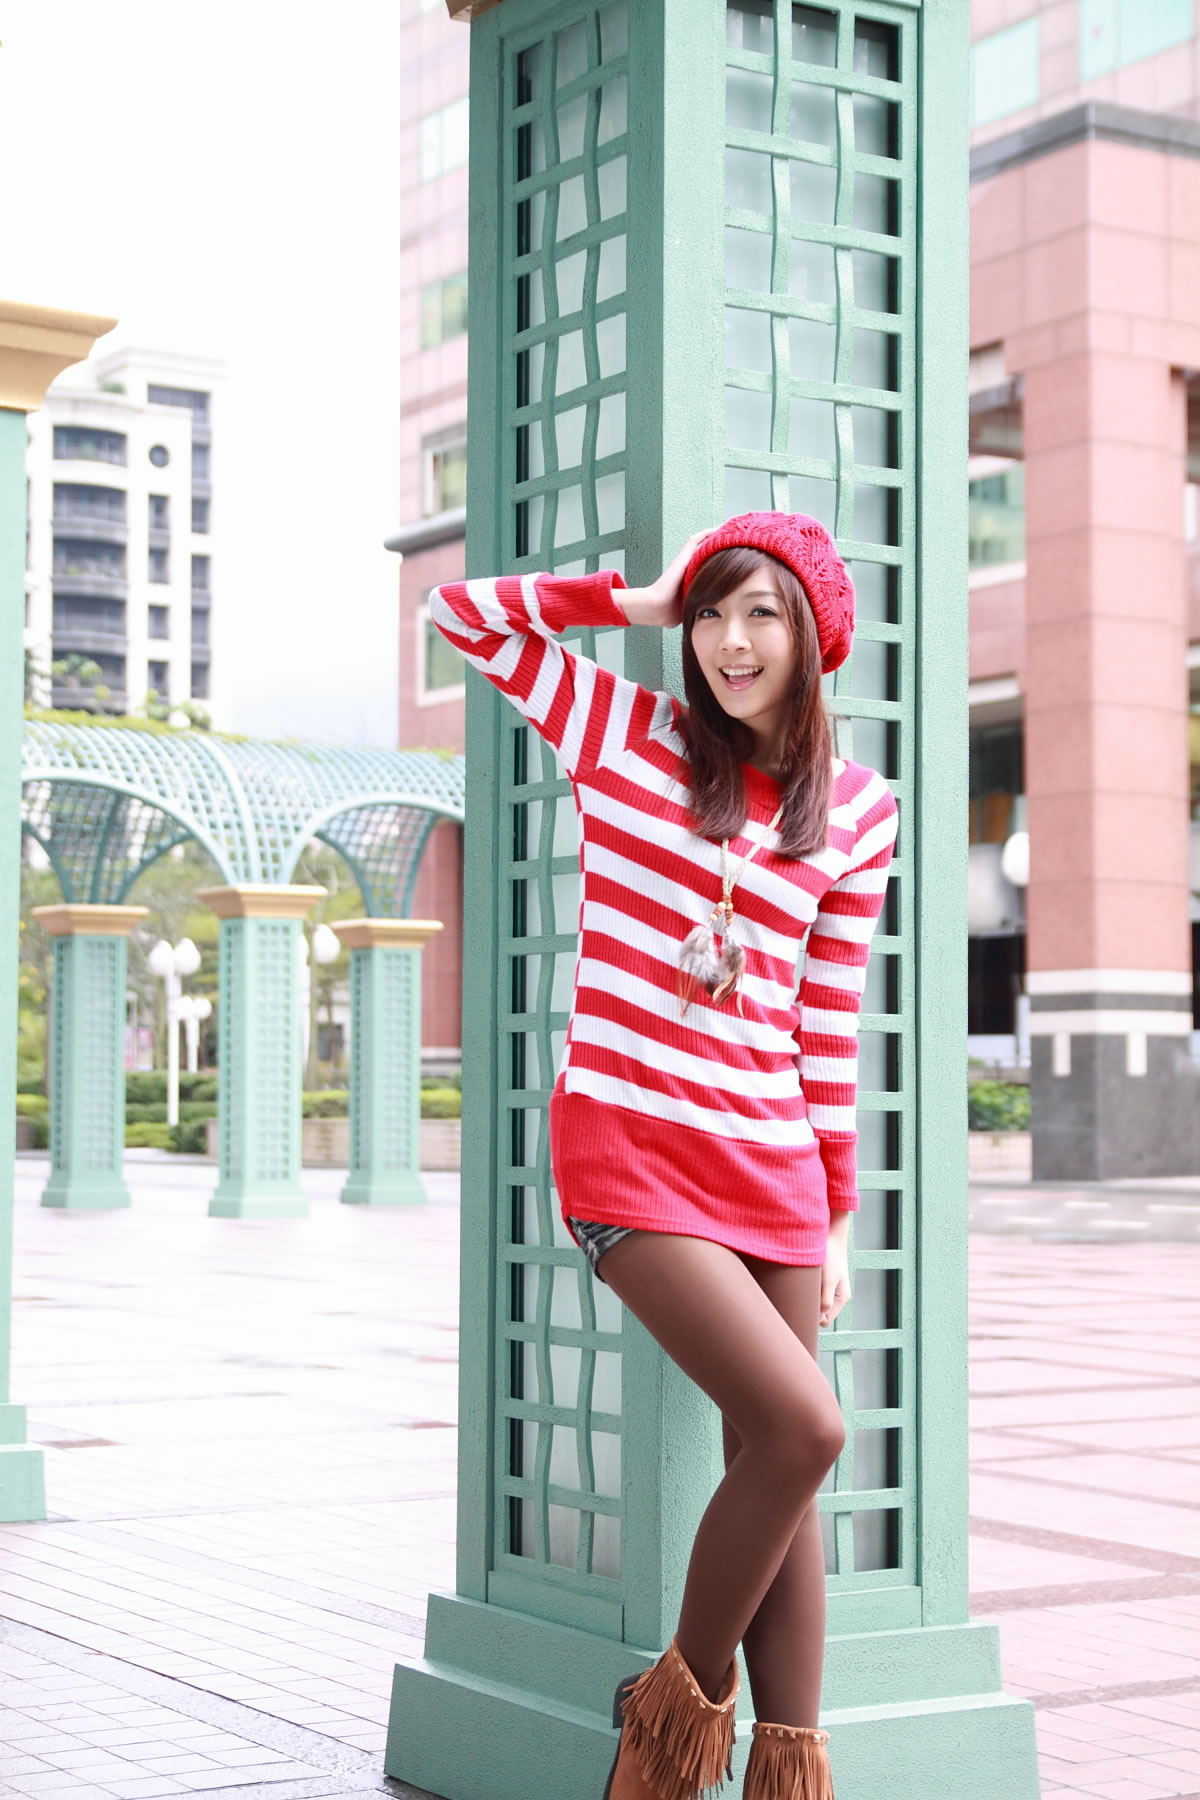 Chinese very pure girl's photos(60)HD